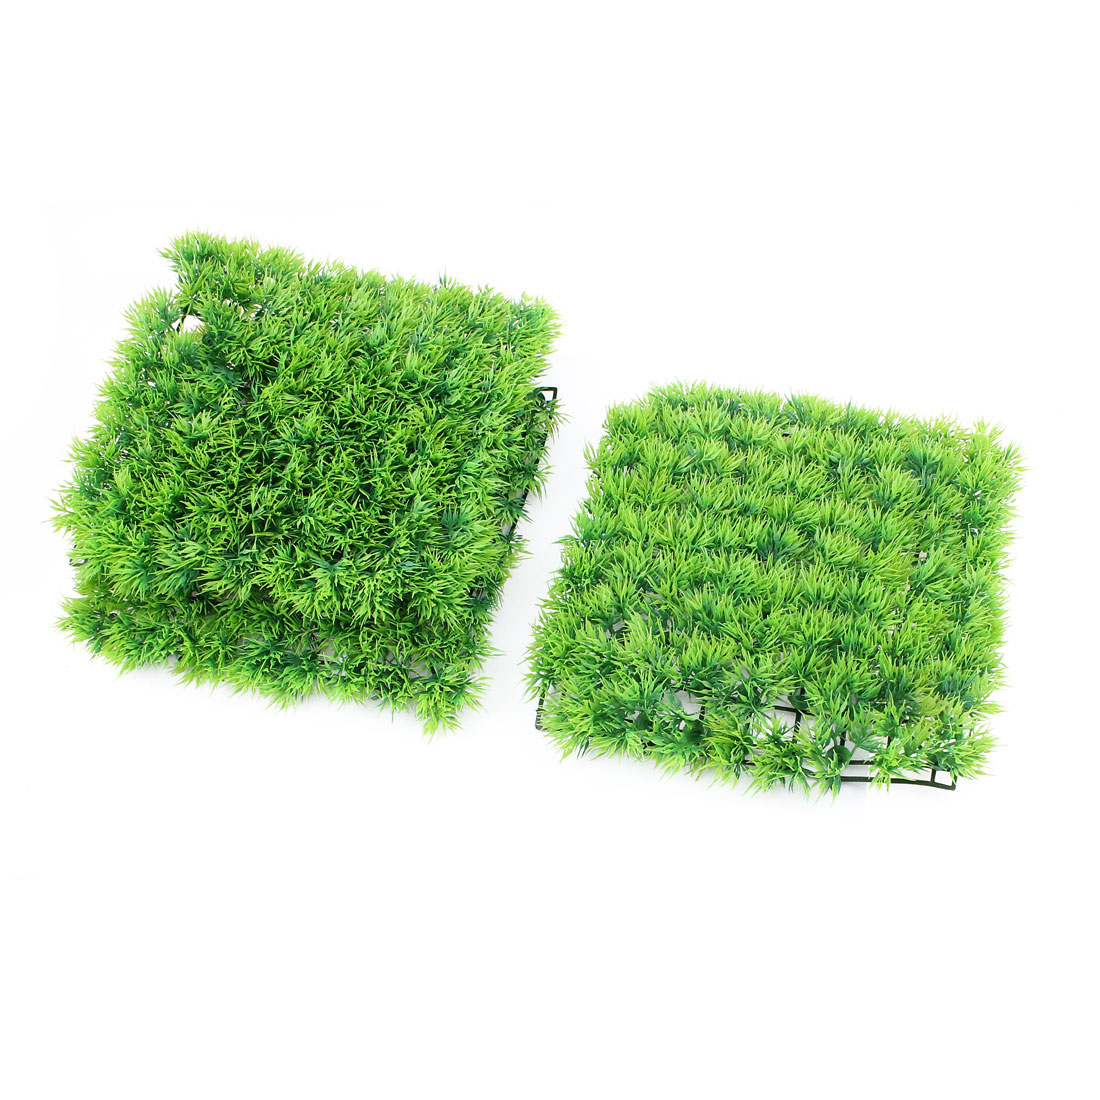 "Fish Tank Aquarium Square Plastic Emulation Grass Plant Decor 10"" Height Green 3 Pcs"